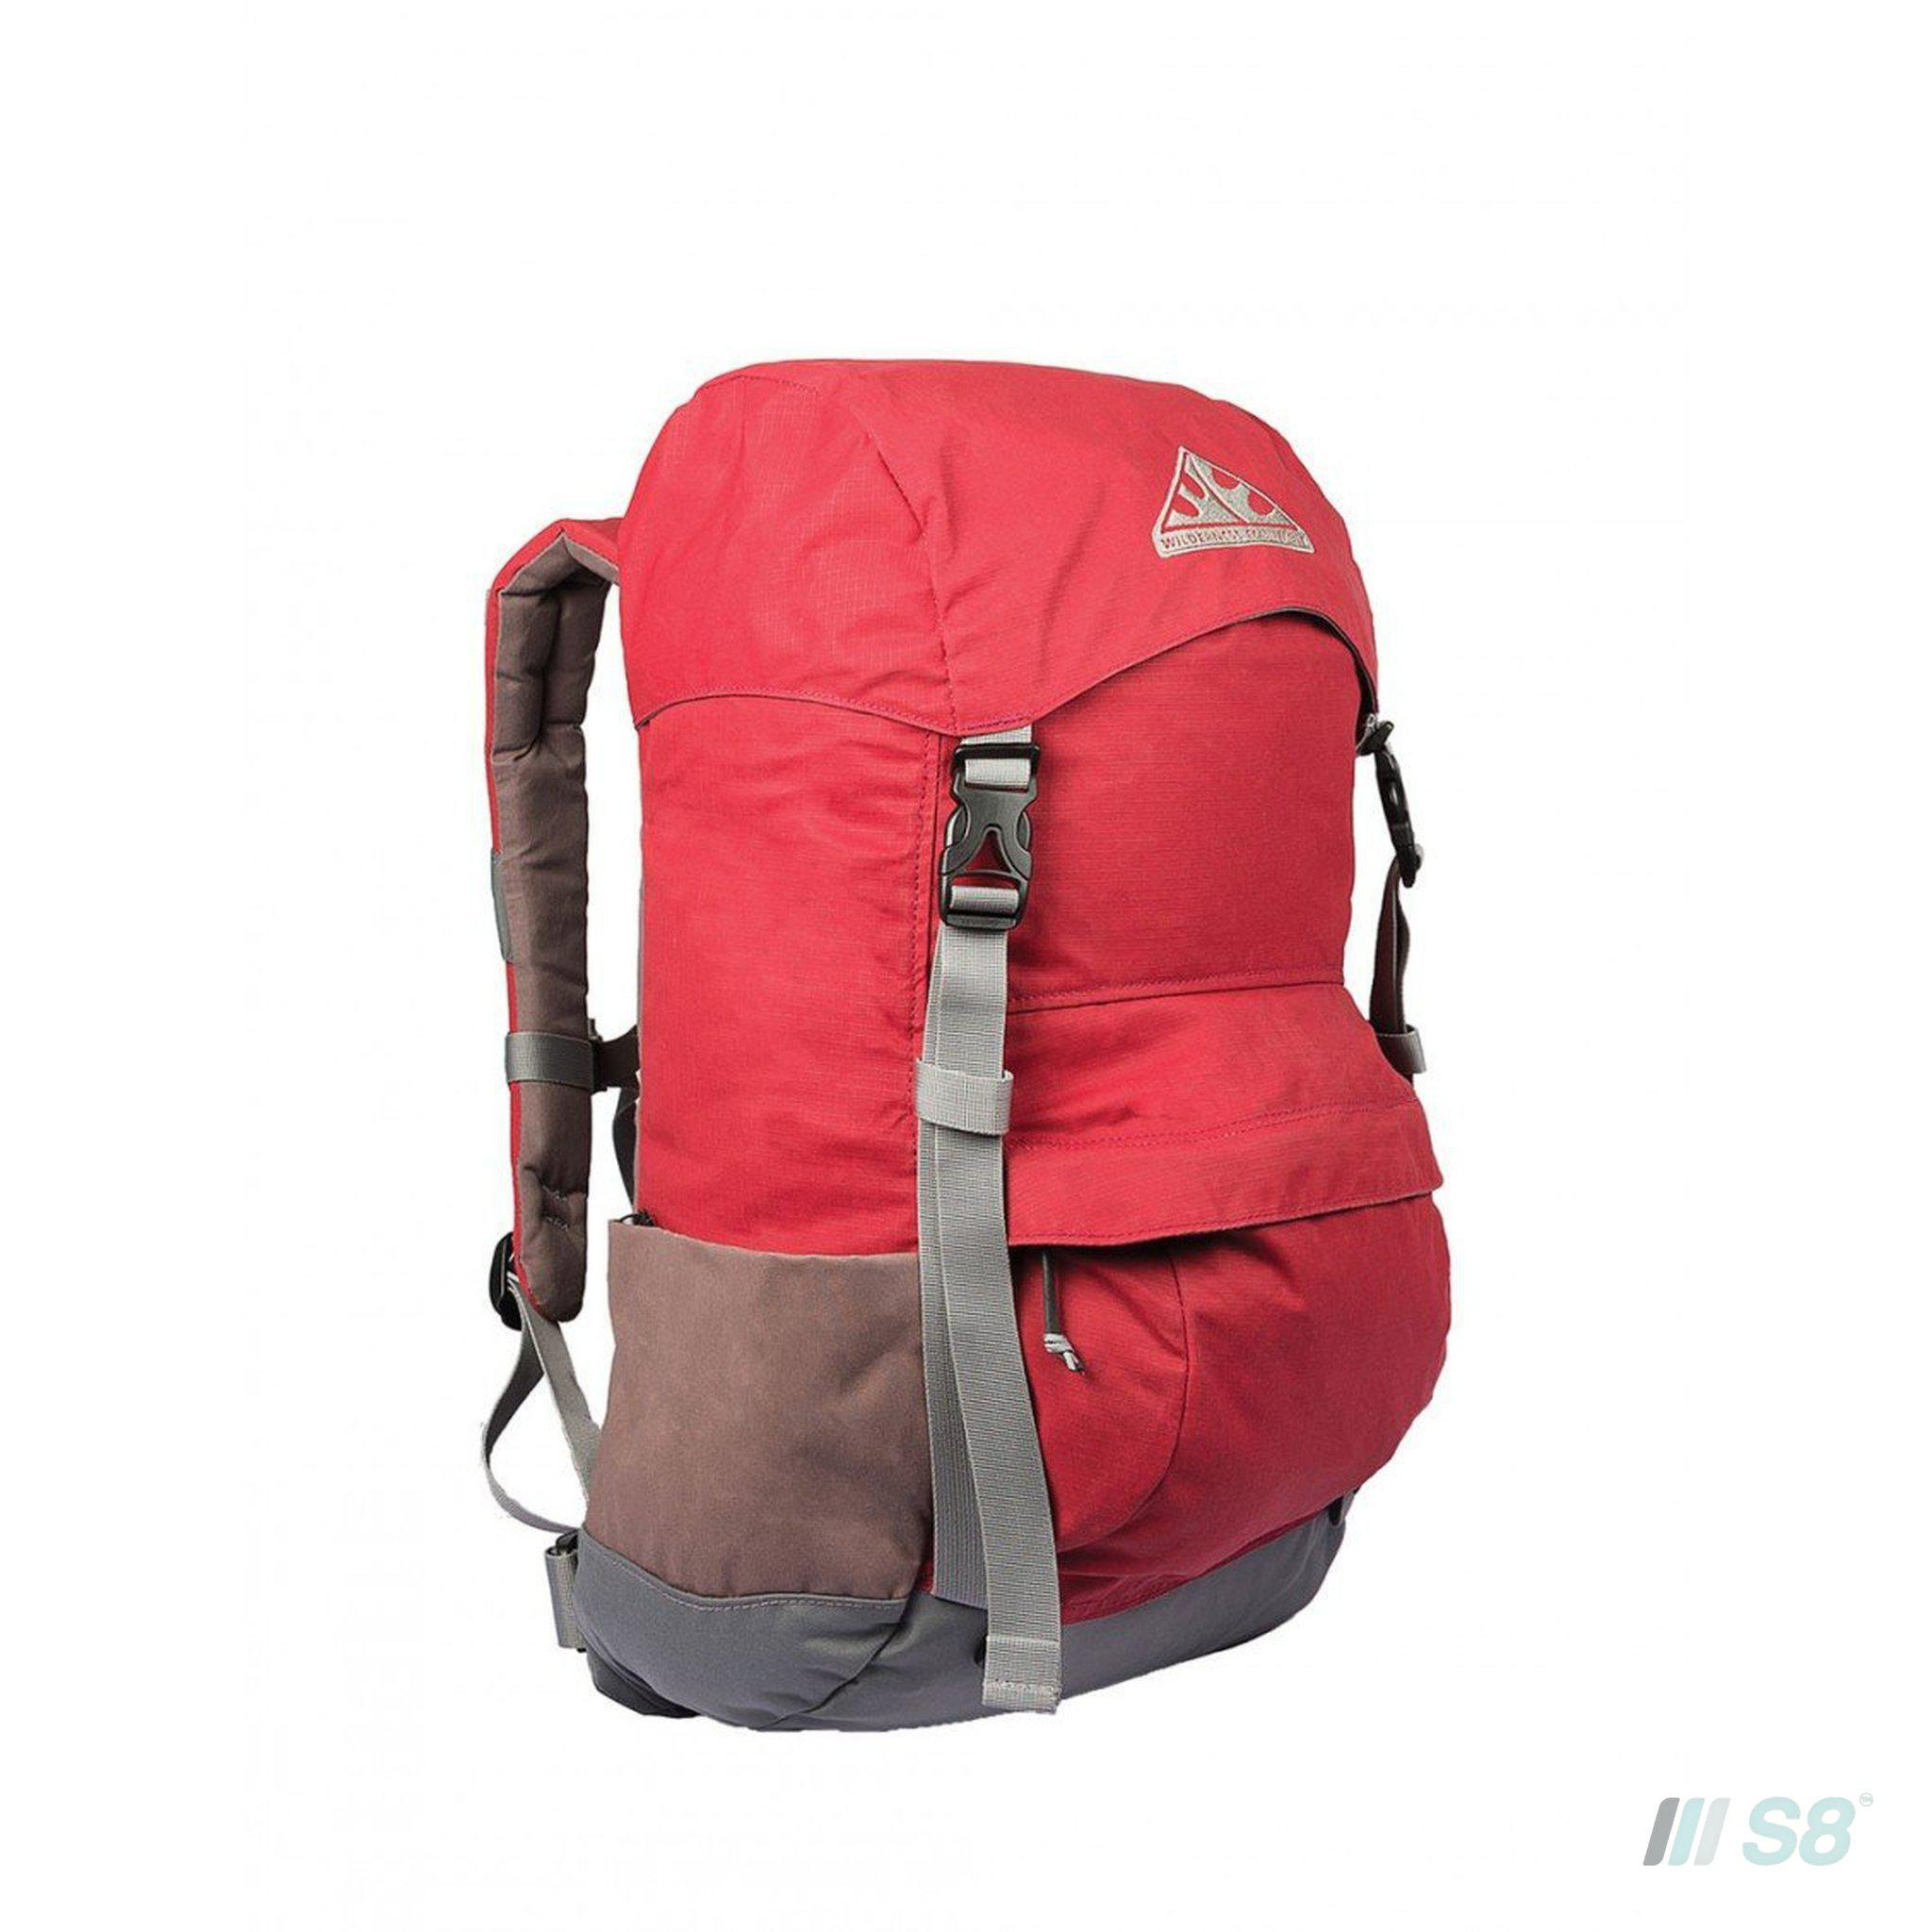 Wilderness Equipment Traverse-Wilderness Equipment-S8 Products Group